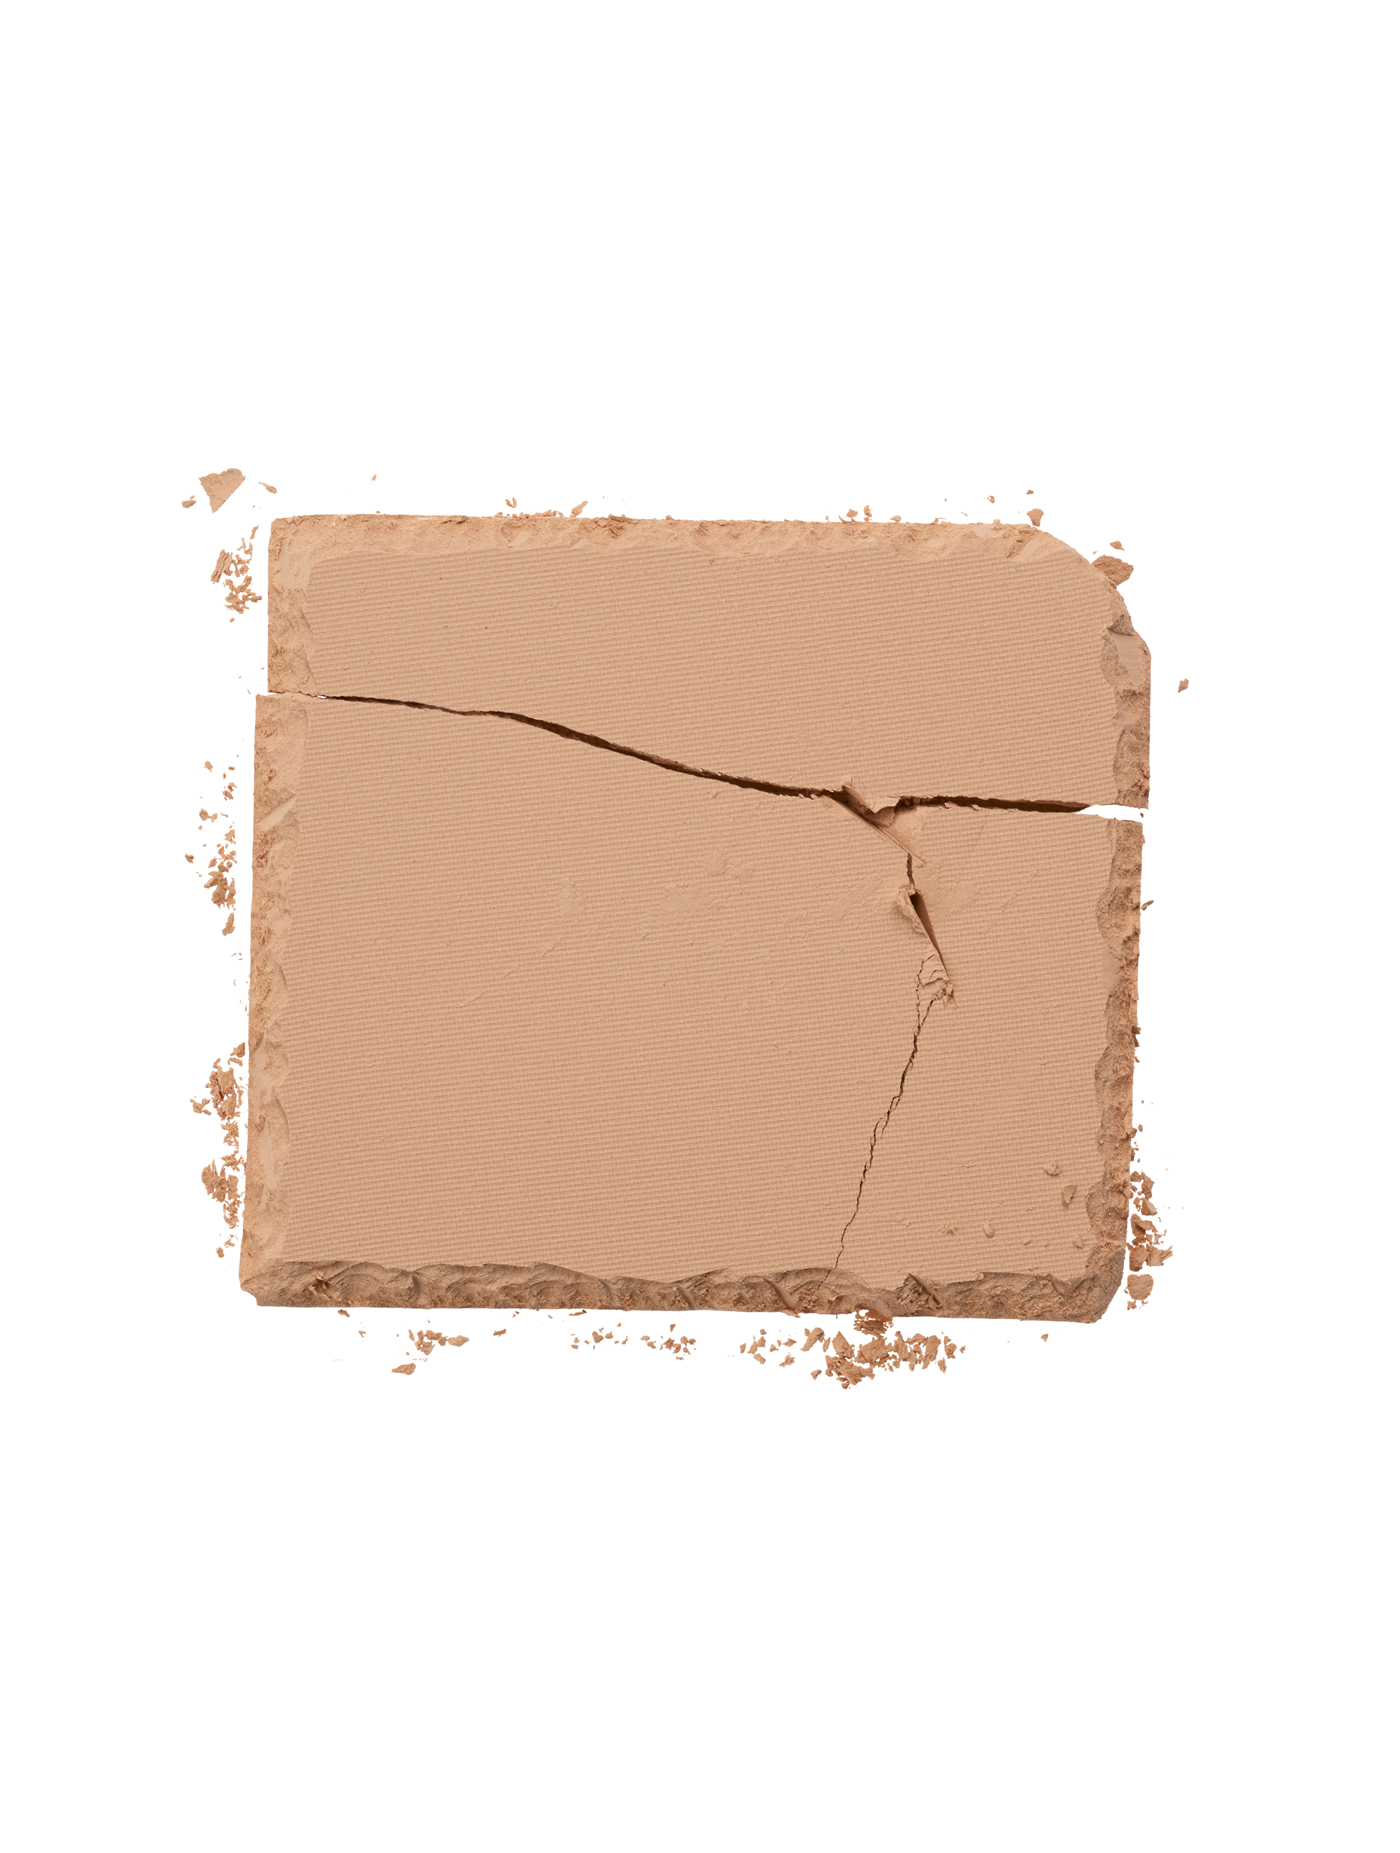 URBAN DECAY Naked Skin Powder Foundation #Med Light Neutral